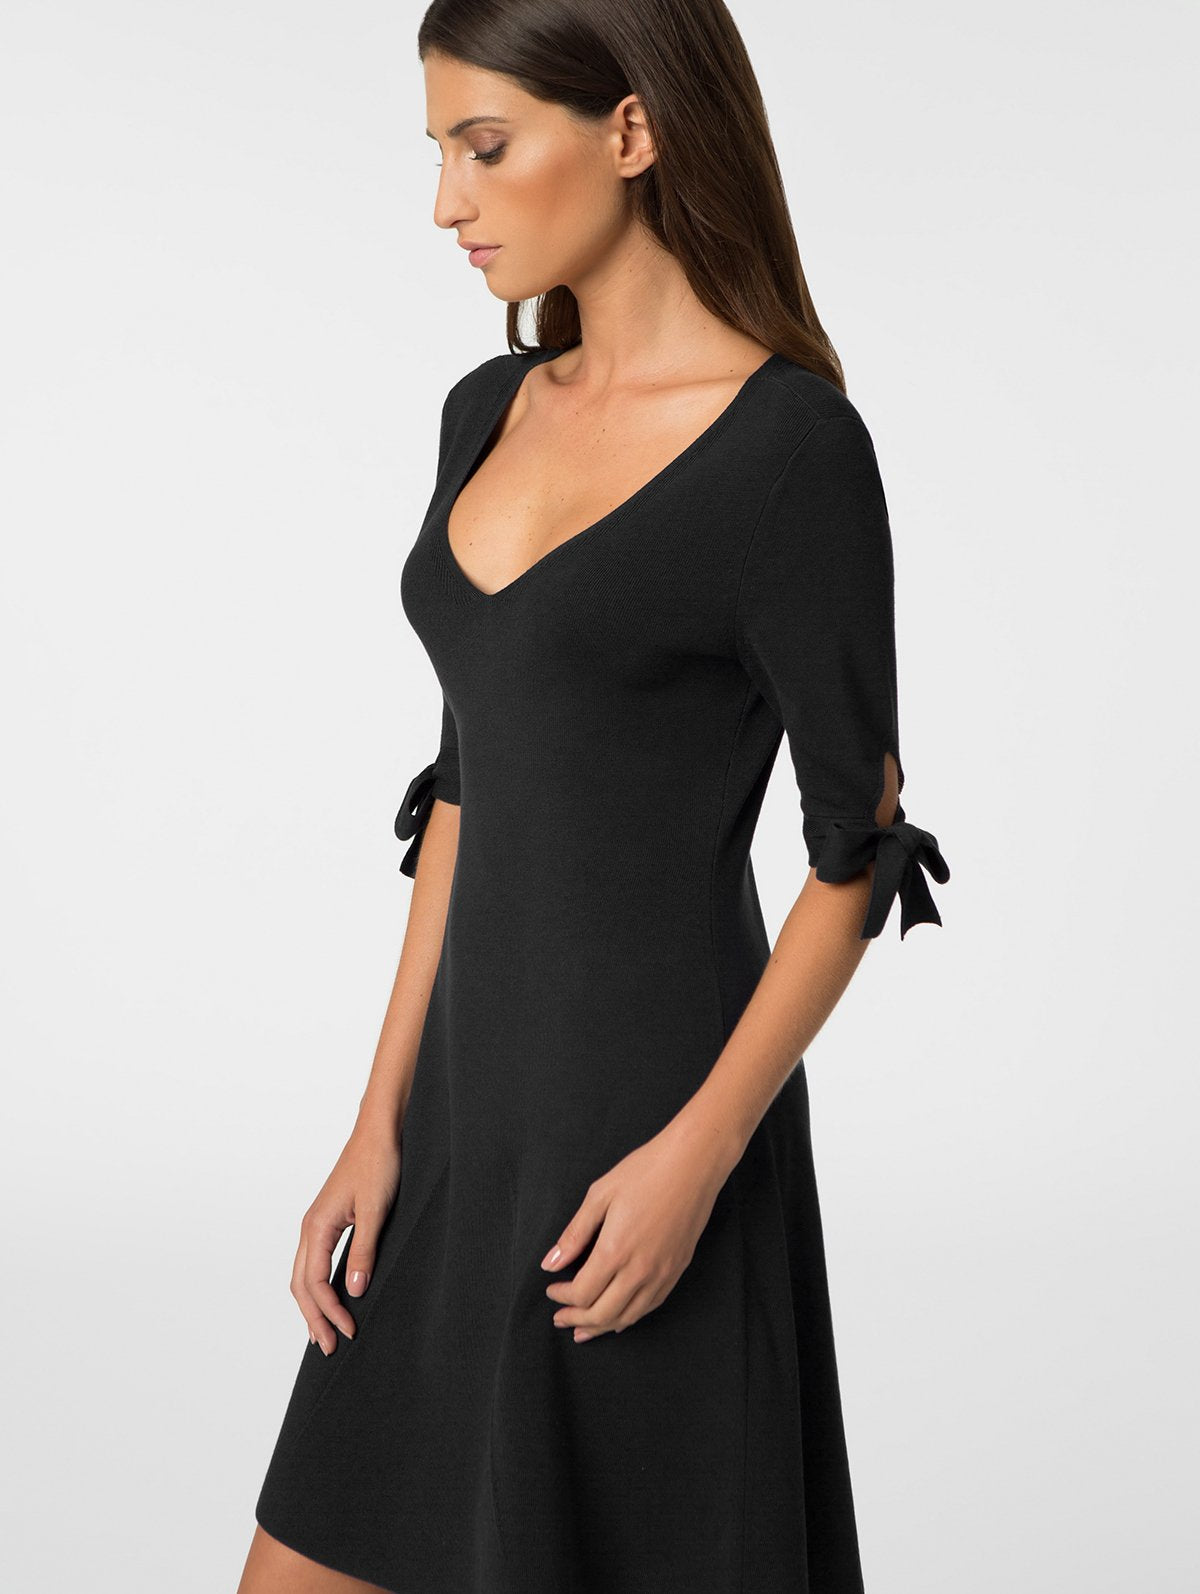 525 AMERICA Tie-Sleeve Fit & Flare Knit Dress